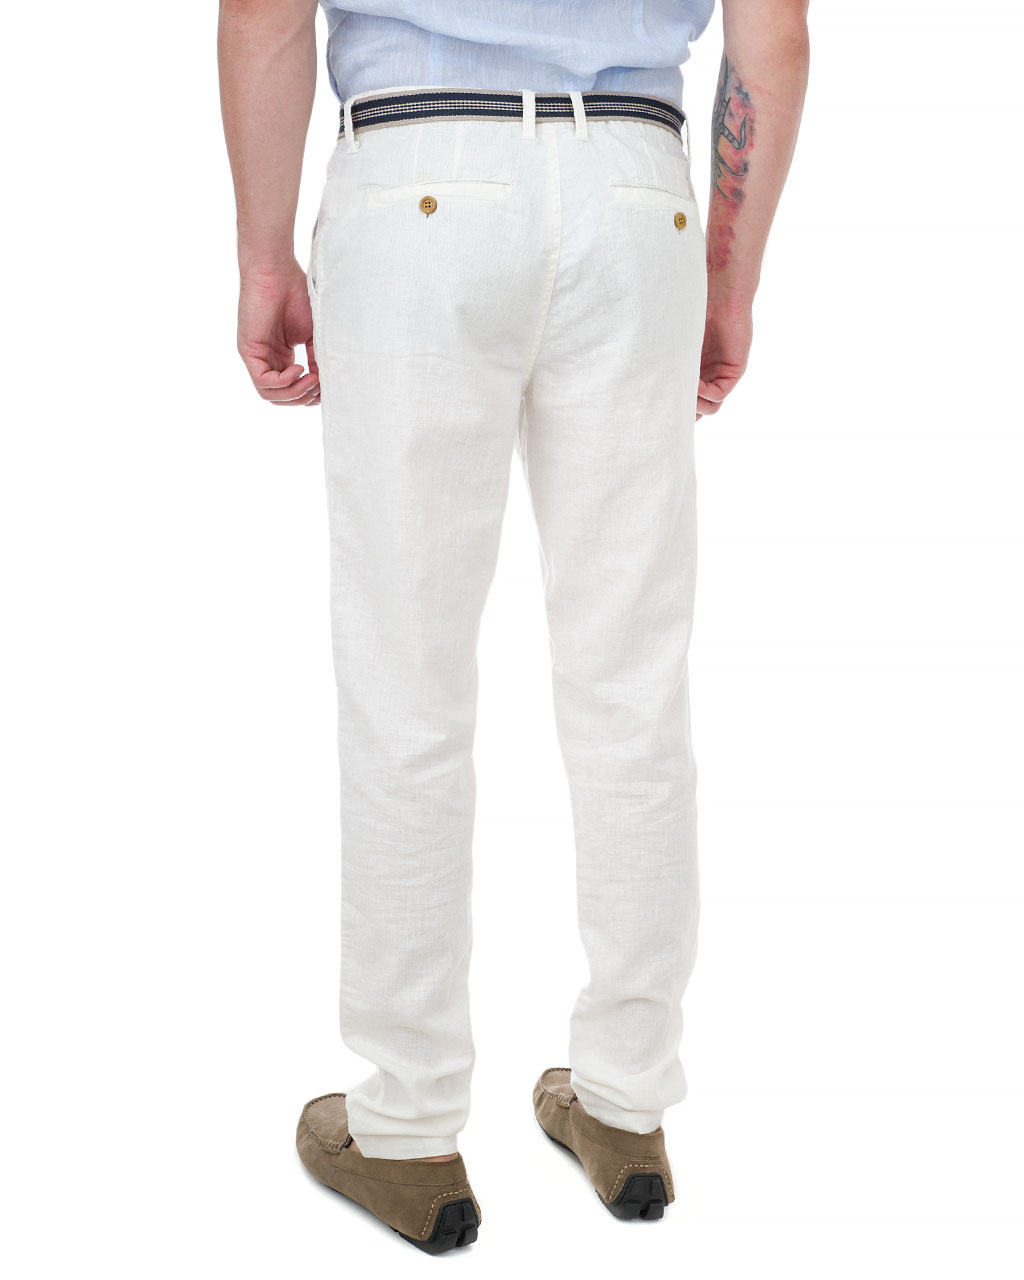 Men's trousers 20708728-70005/91 (4)